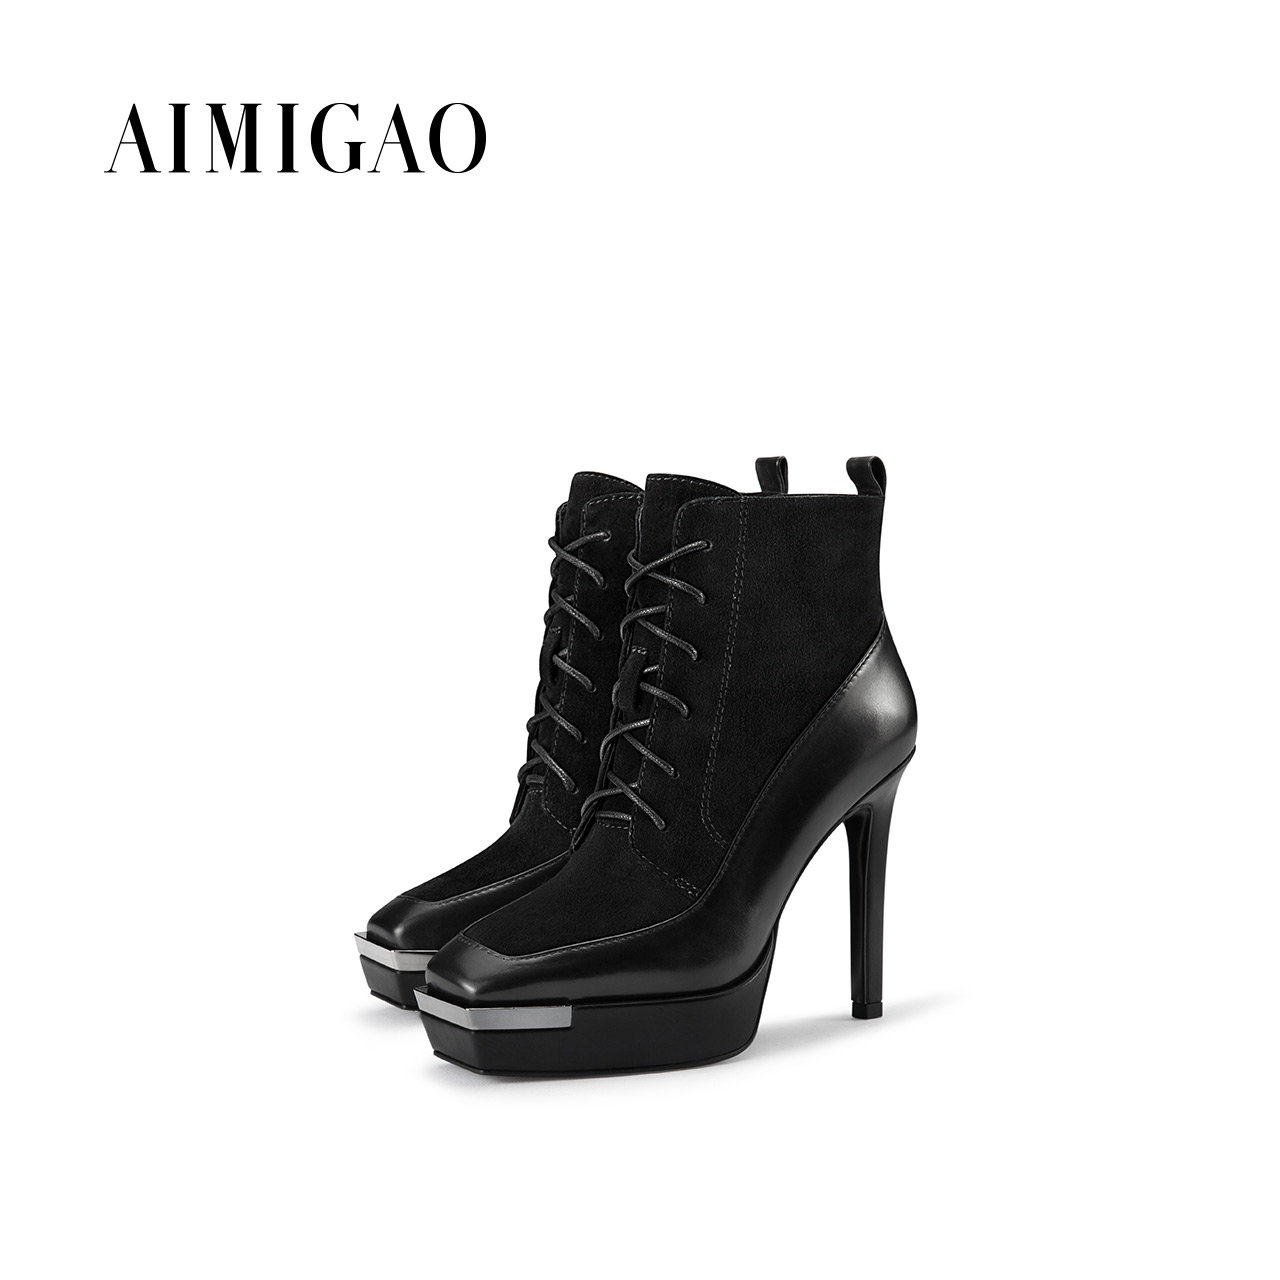 AIMIGAO women suede Leather platform high heel ankle boots fashsion women's side zipper Lace-up boots shoes 2017 winter new